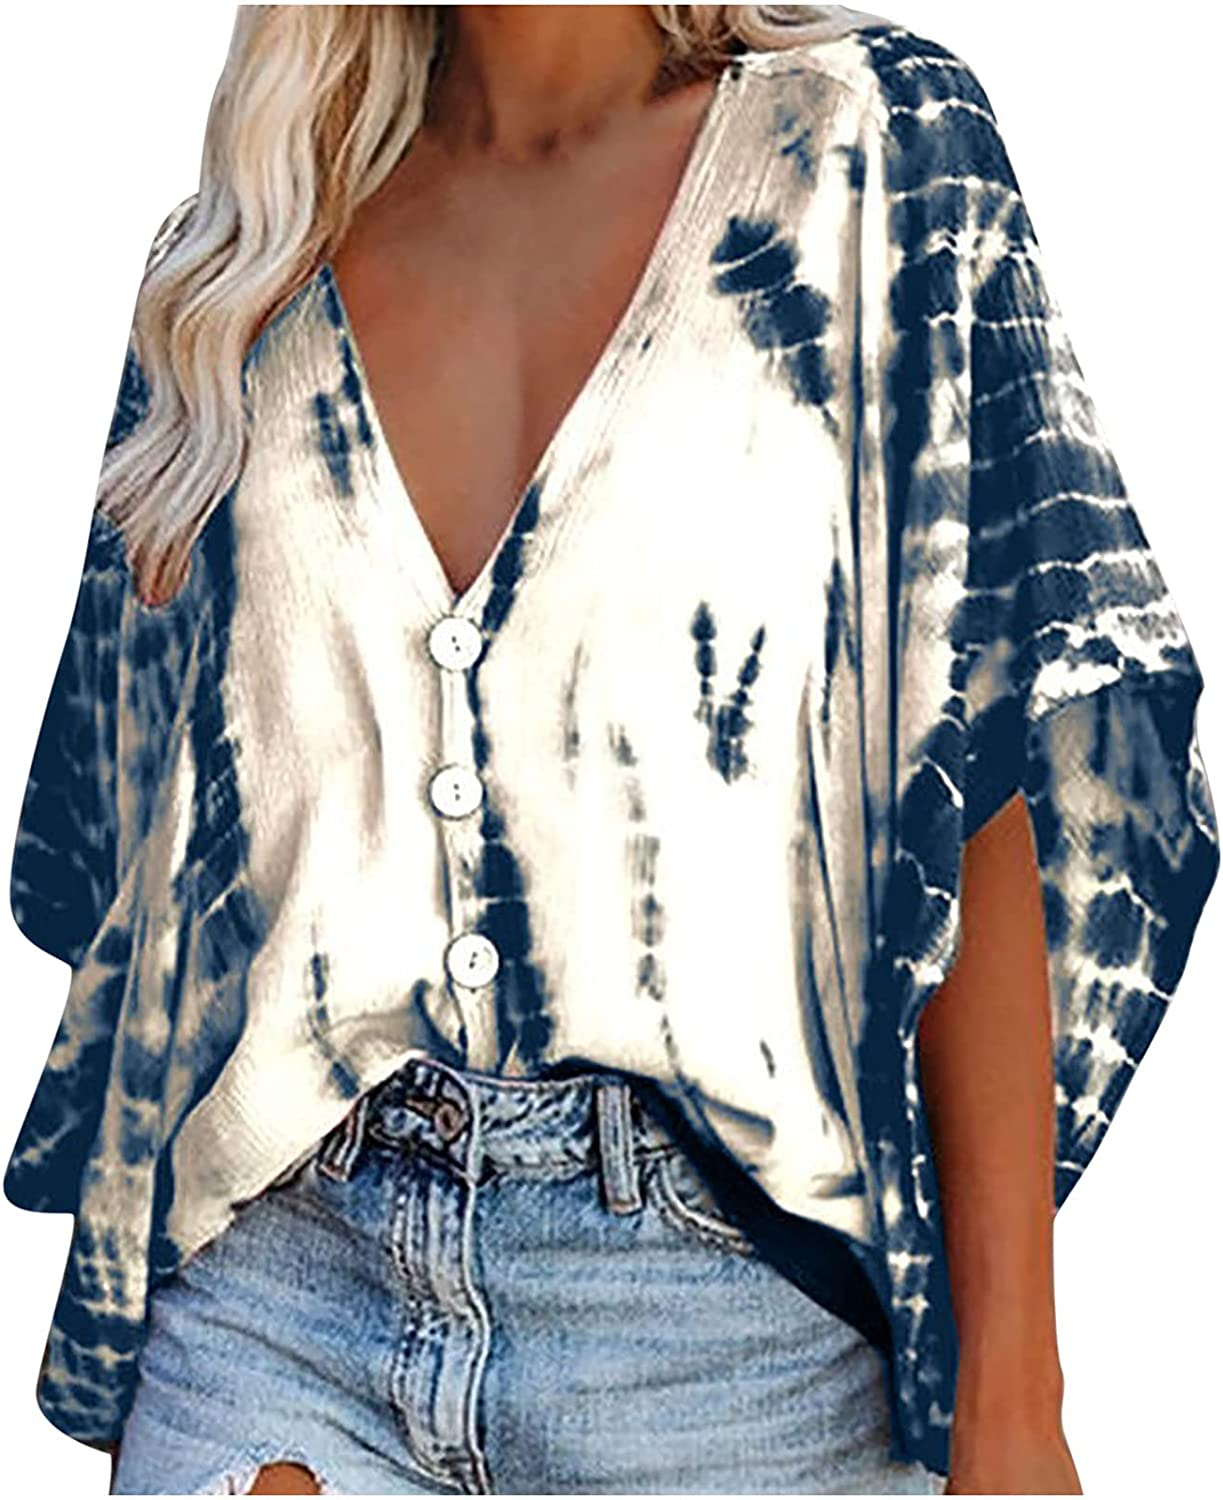 Womens Summer Tops Deep V Neck Tunic Tops Loose Half Sleeve Shirts Casual Buttons Tees Fashion Tie Dye Blouse